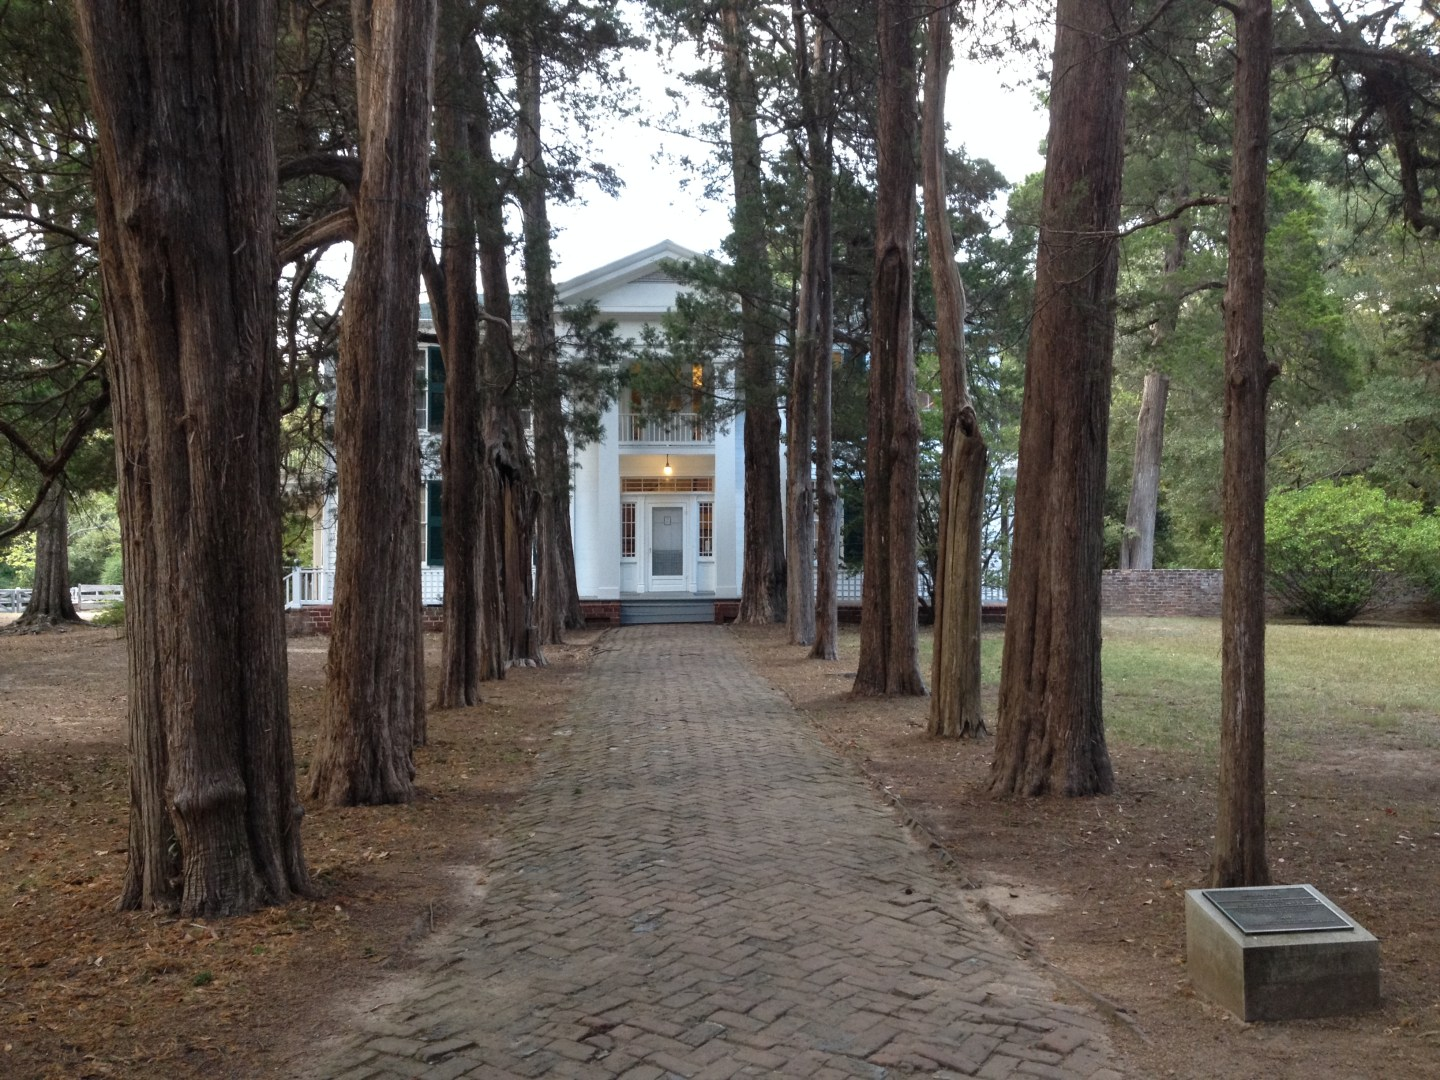 Rowan Oak William Faulkners antebellum home